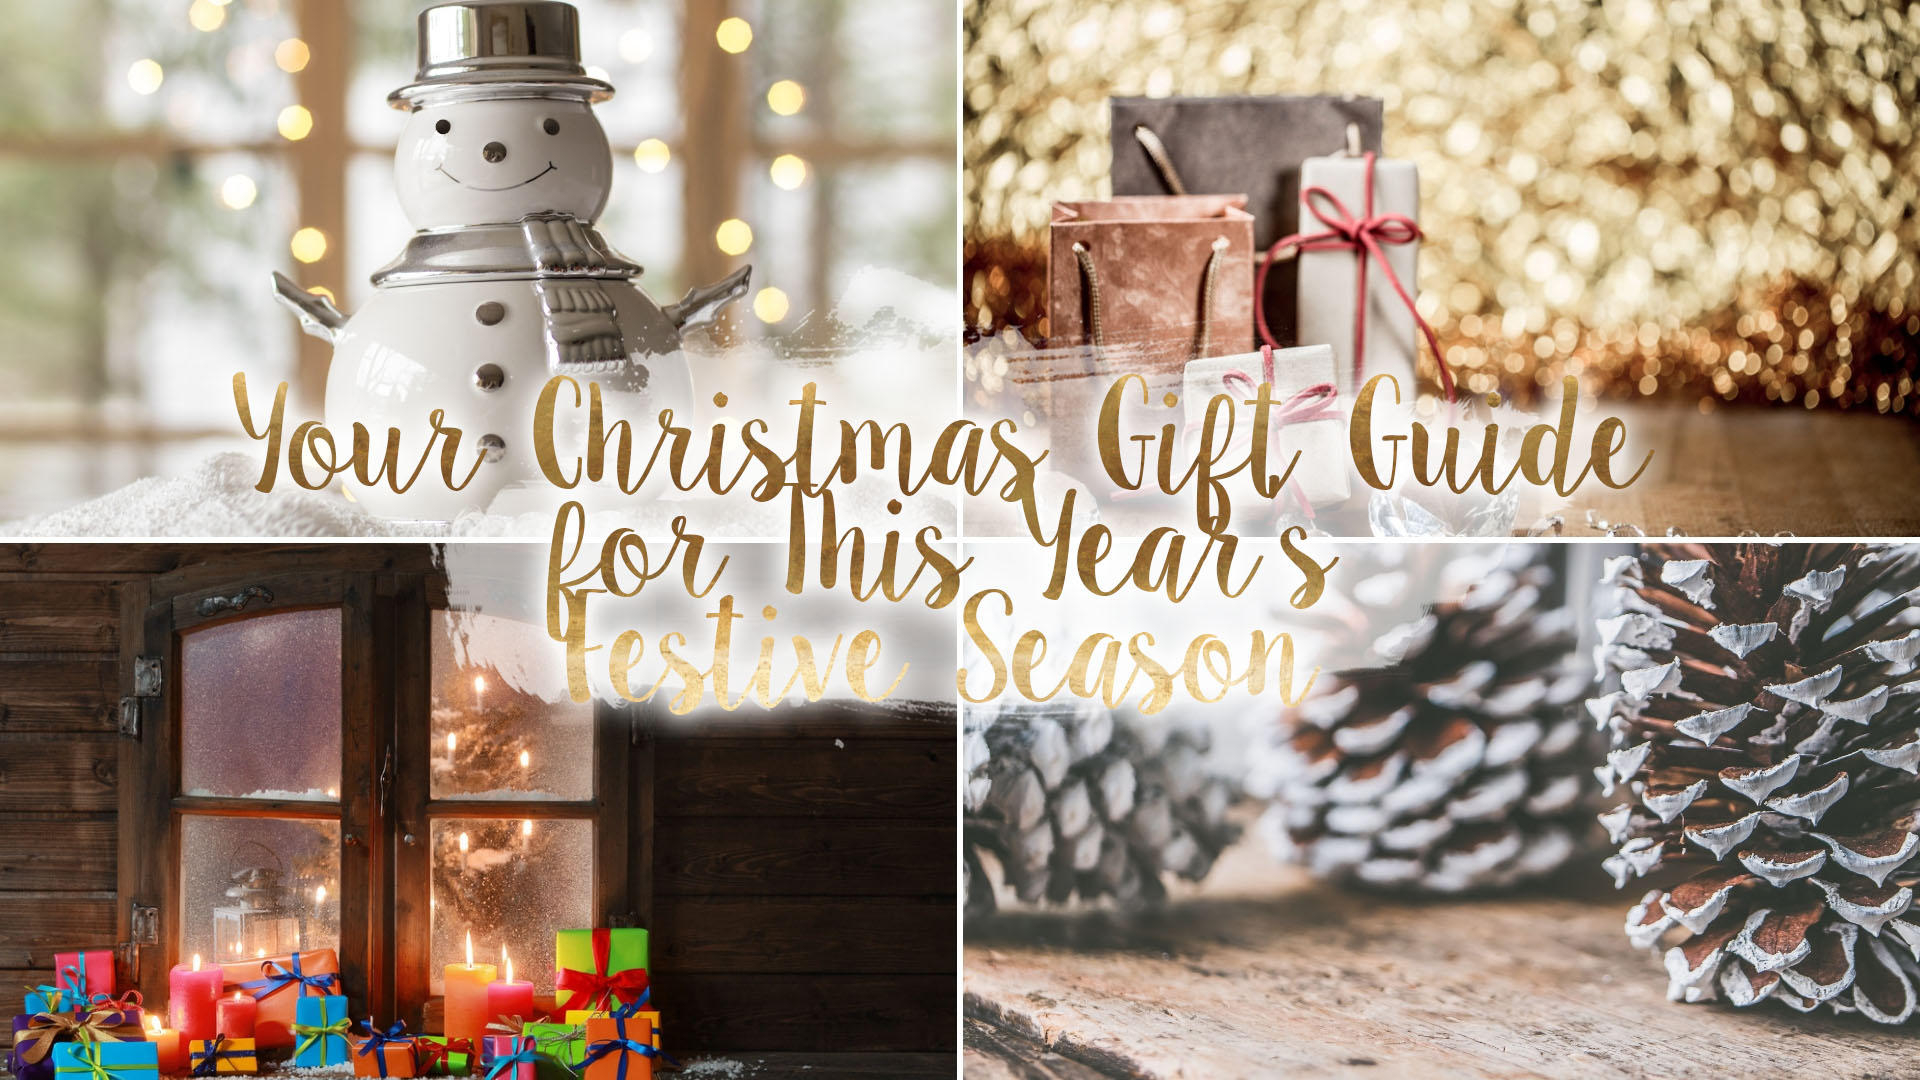 Your Christmas Gift Guide for This Year's Festive Season* || Life Lately